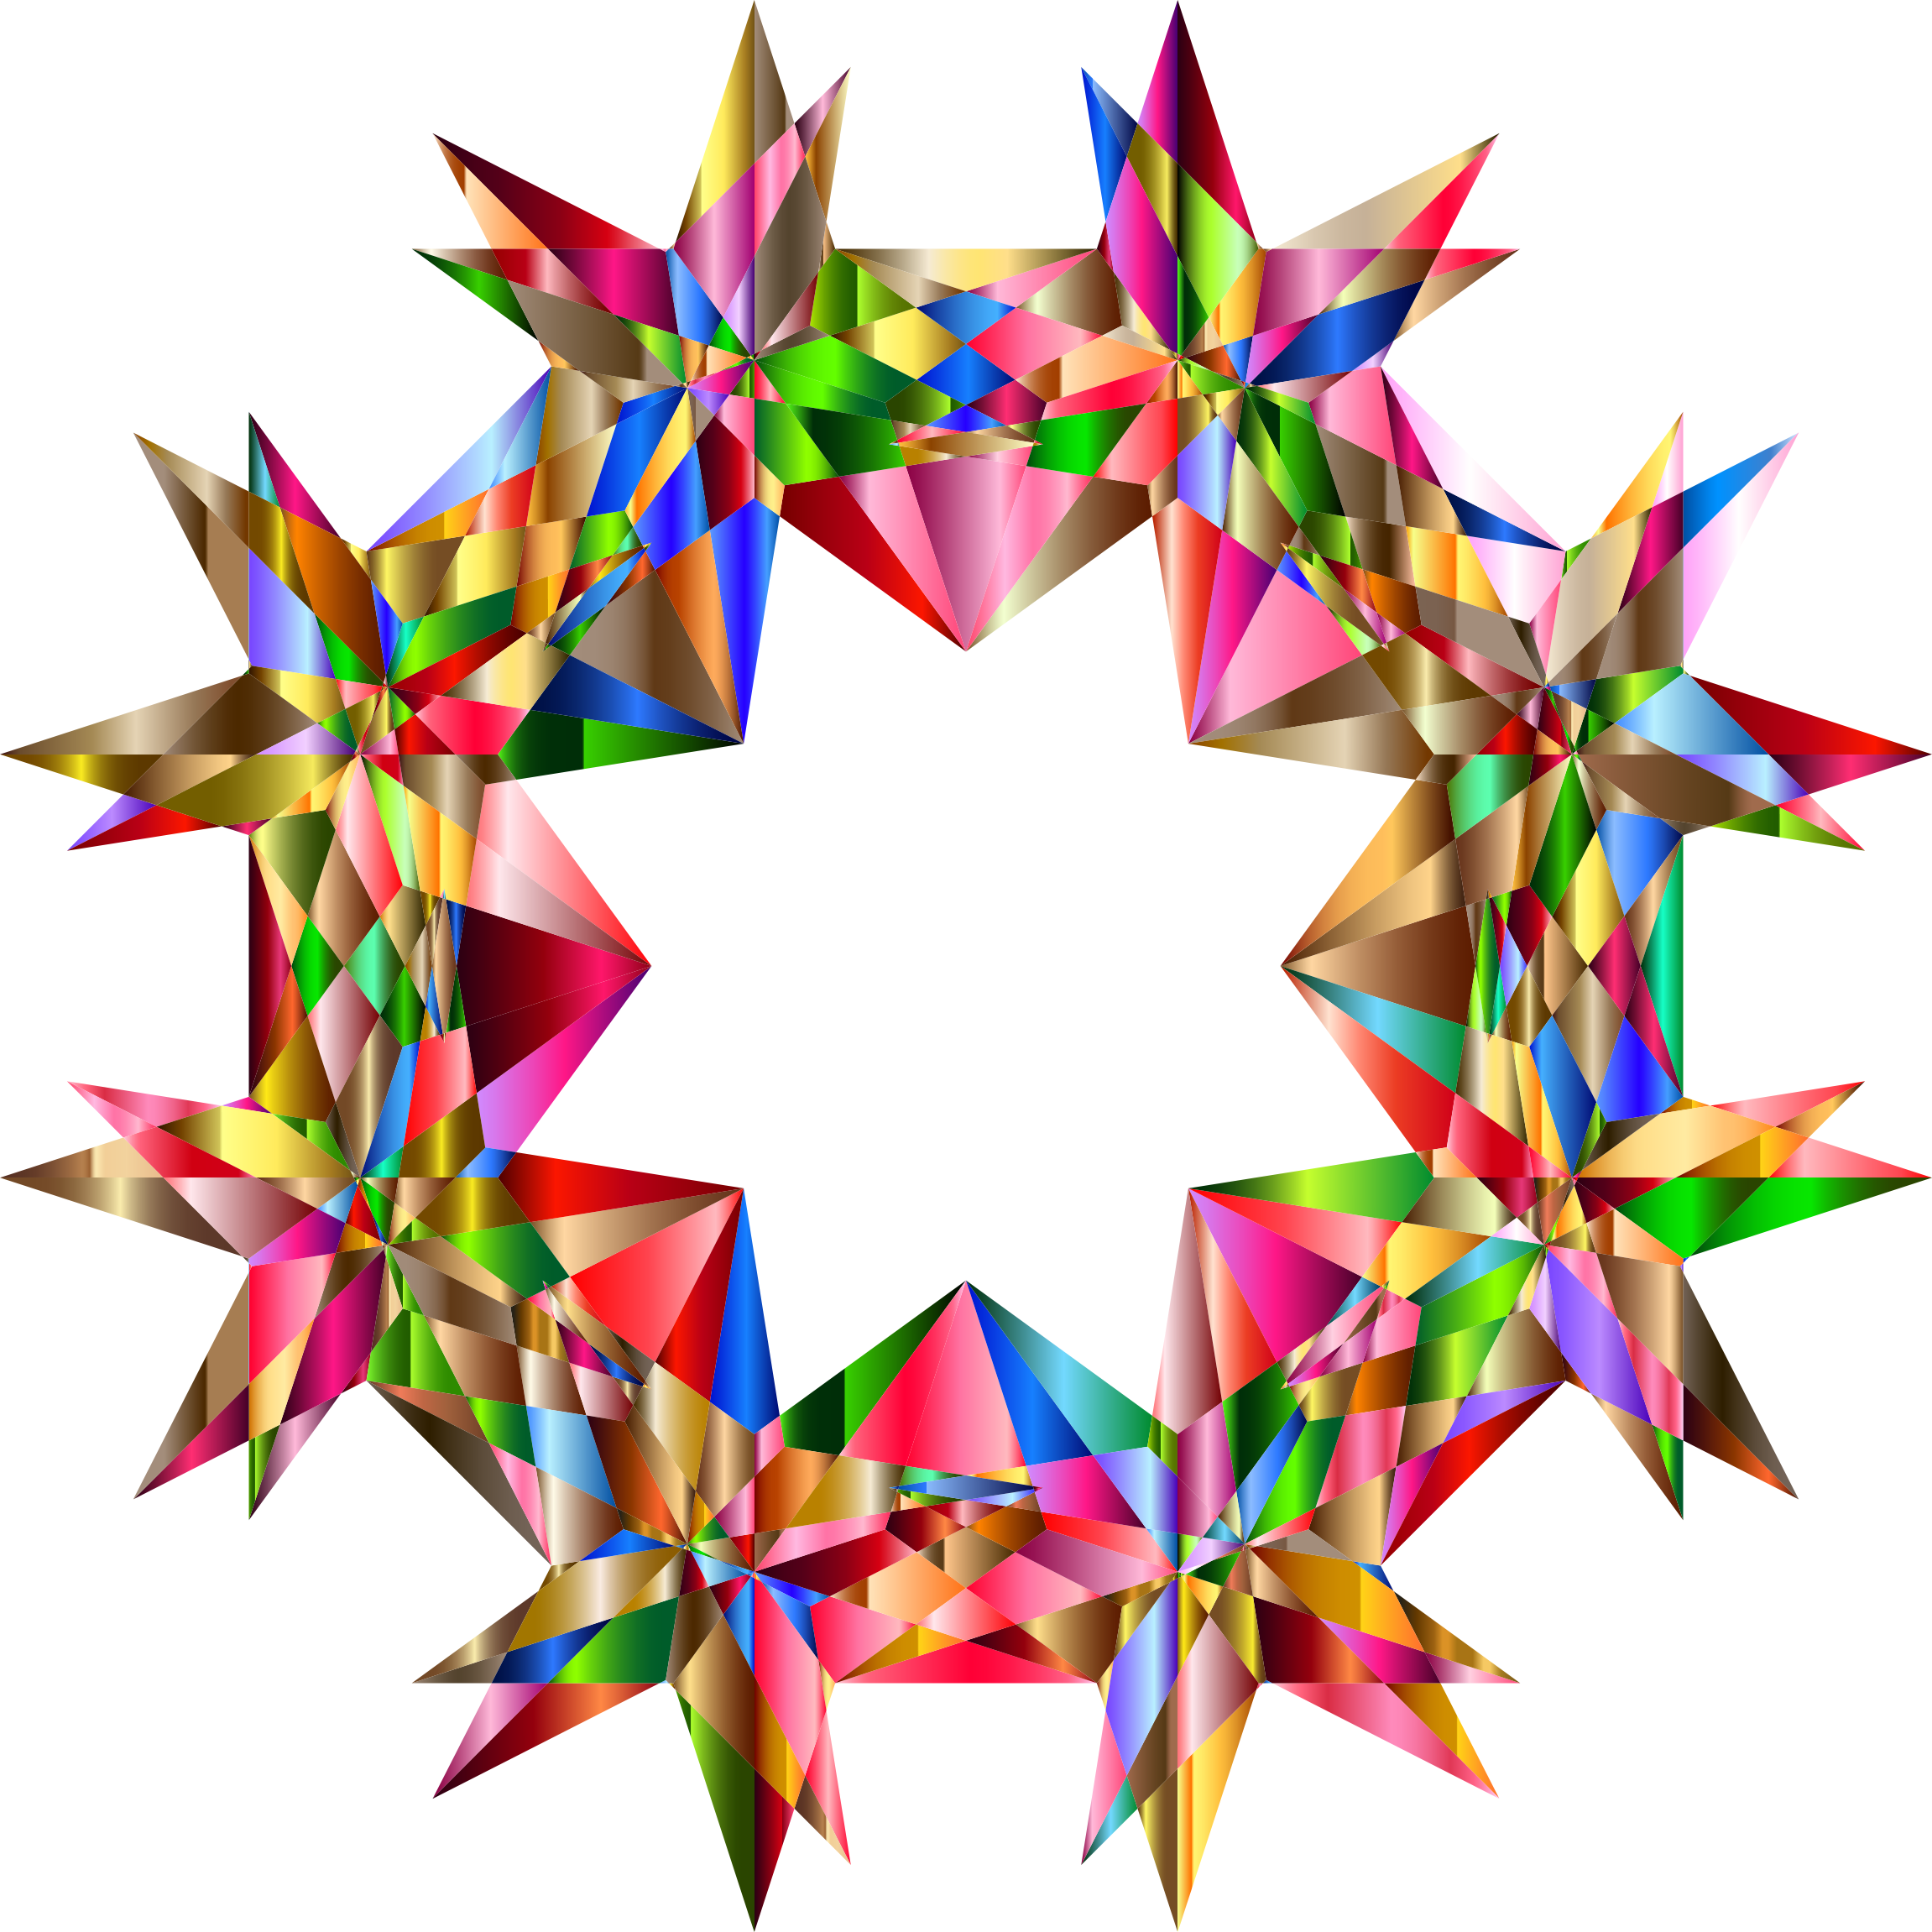 Colorful Geometric Star 7 Variation 2 by GDJ